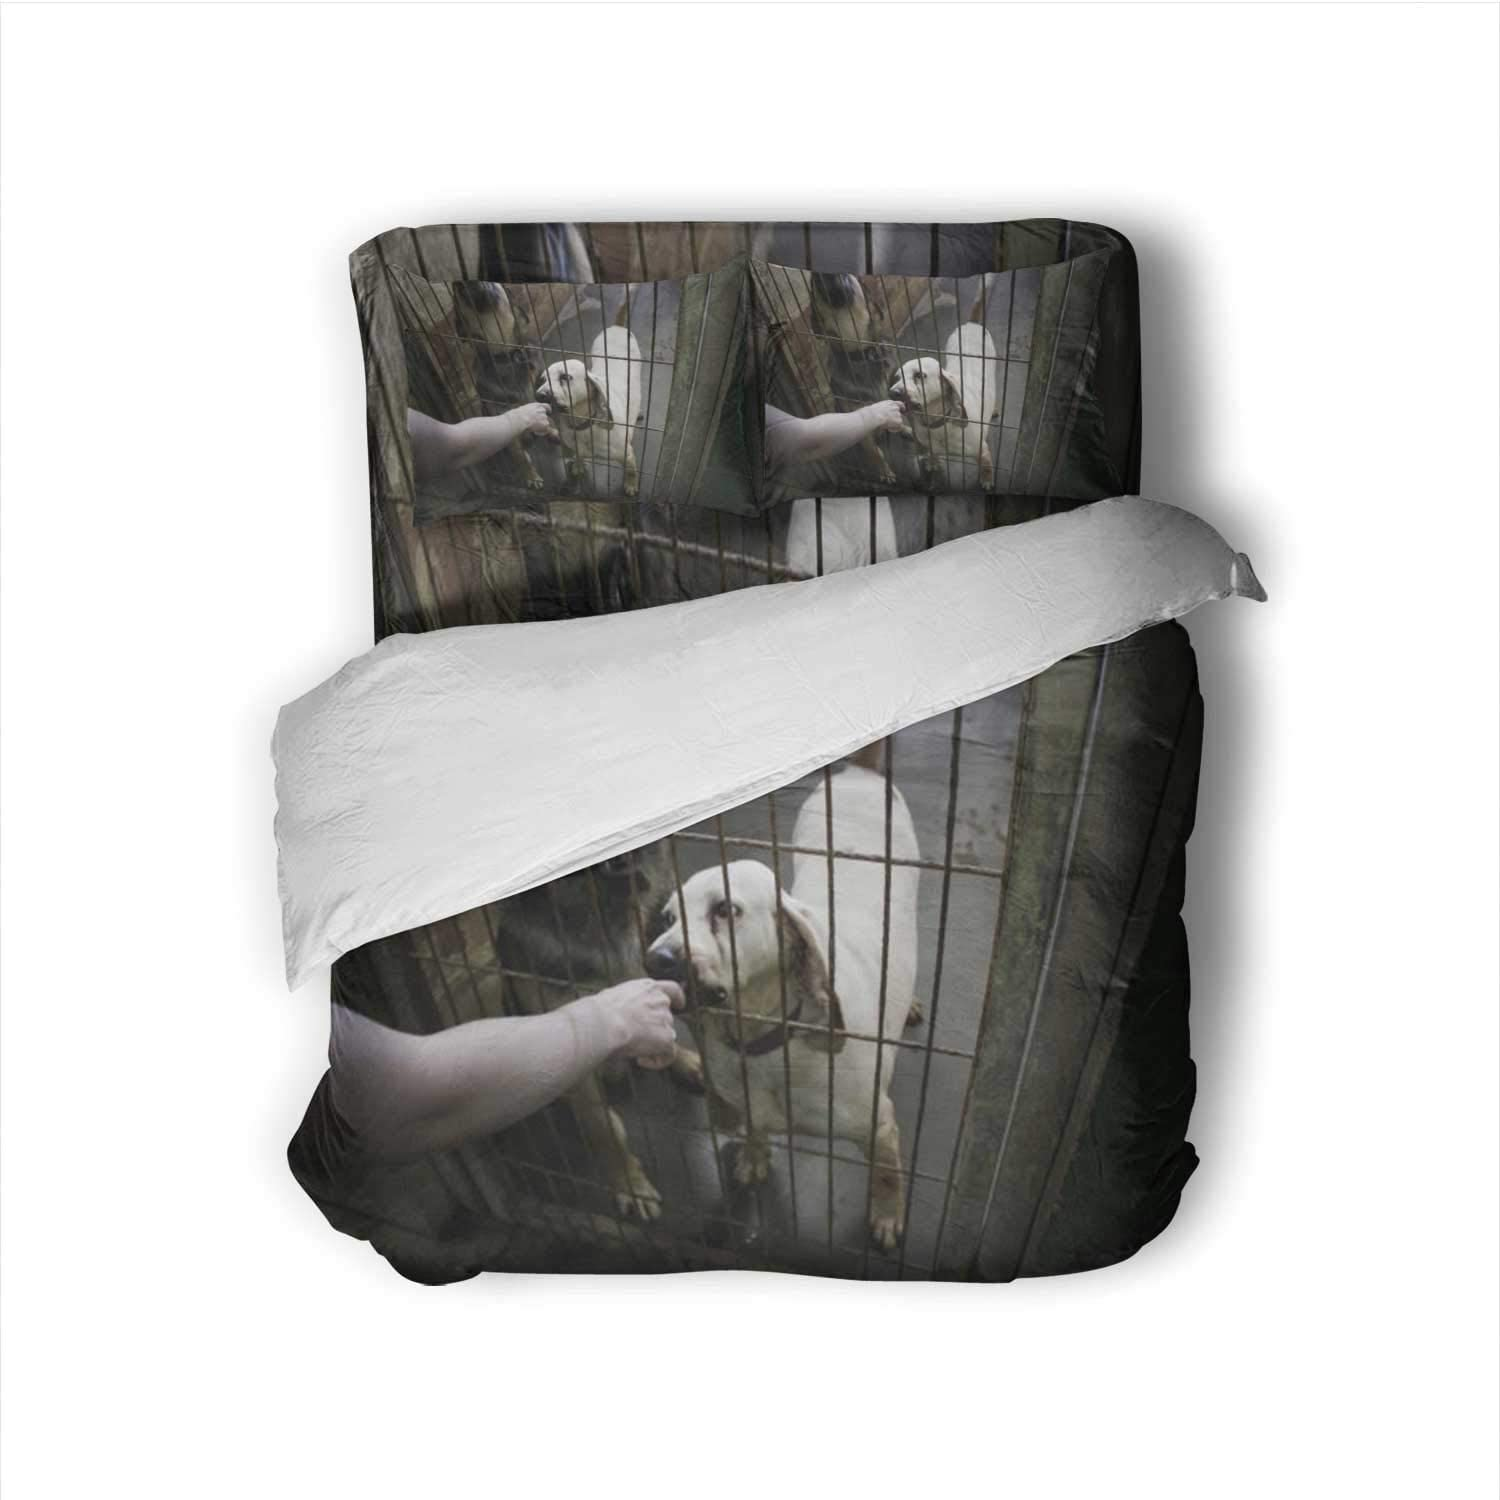 Dog in Kennel Spain,Size Sheets Dog Sheets Size Twin Size